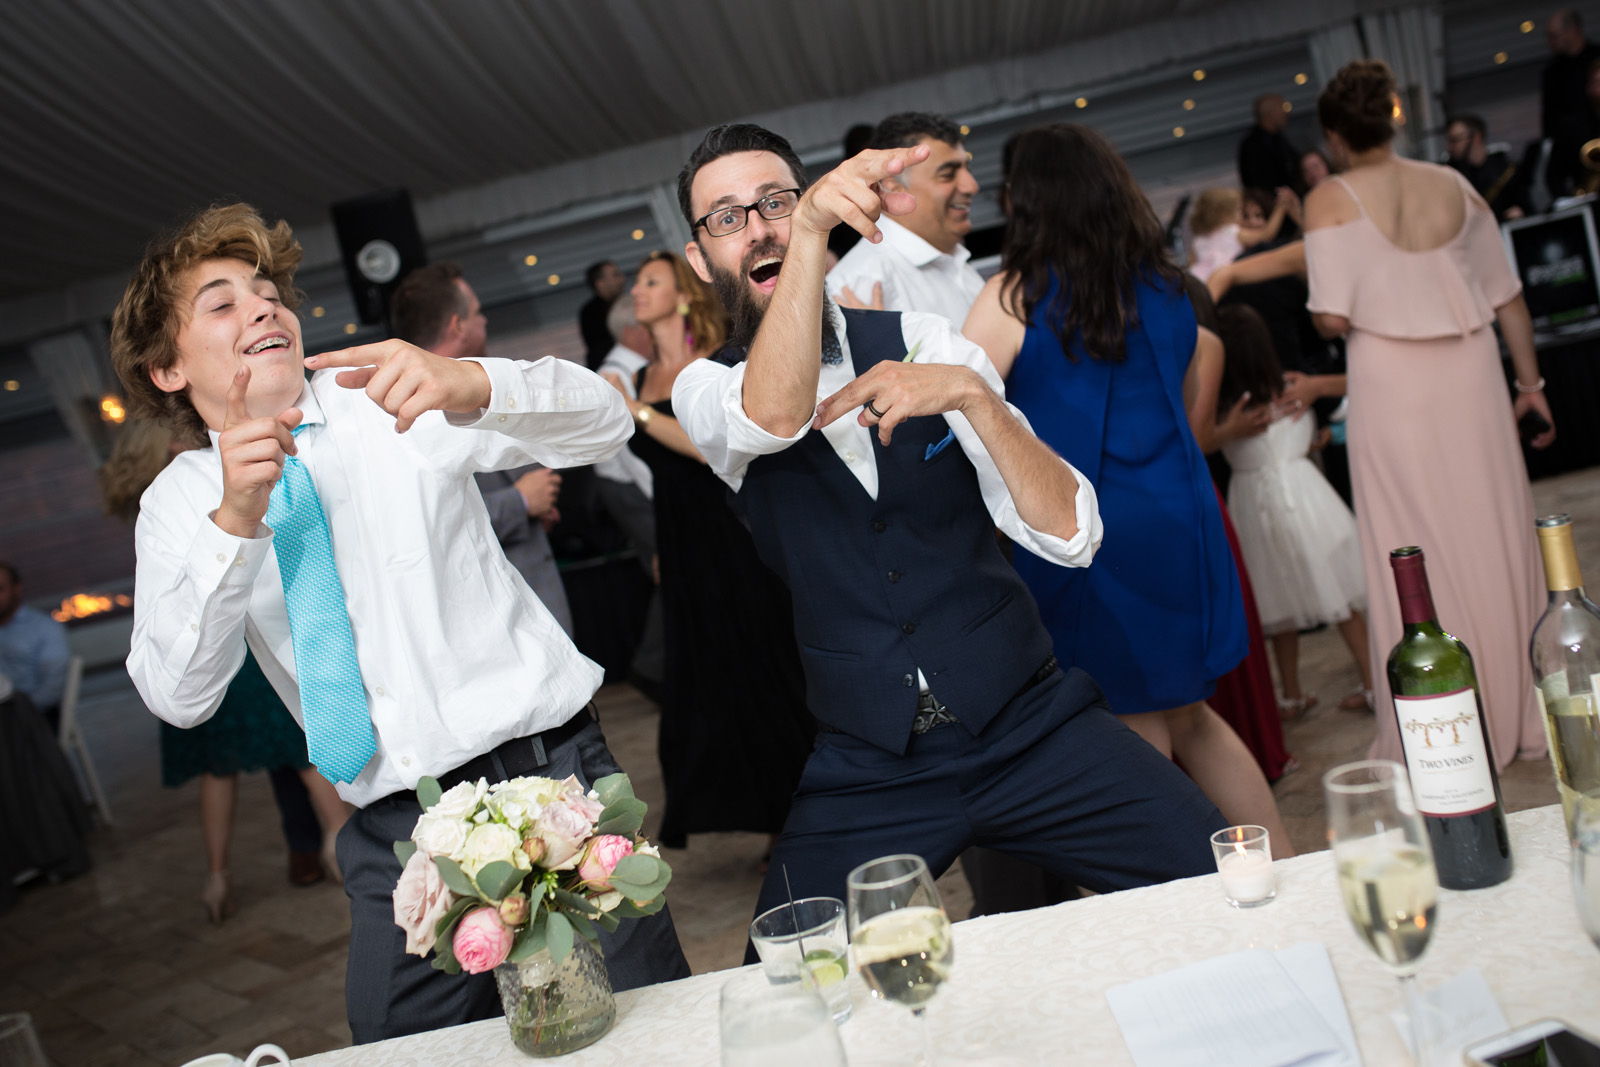 Funny Crazy dancing during wedding reception